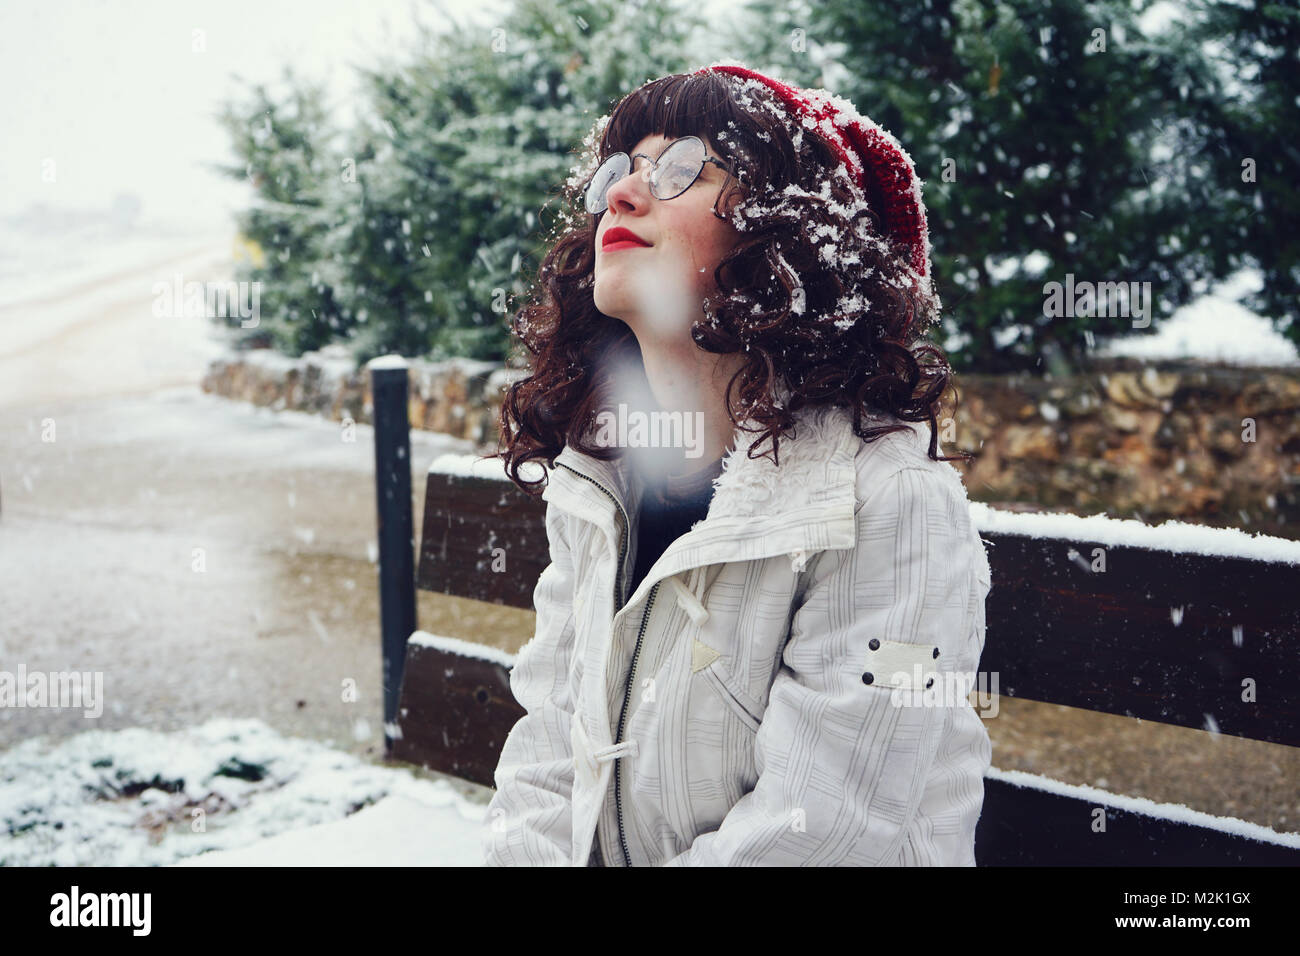 Young cute woman enjoying a snowy day - Stock Image